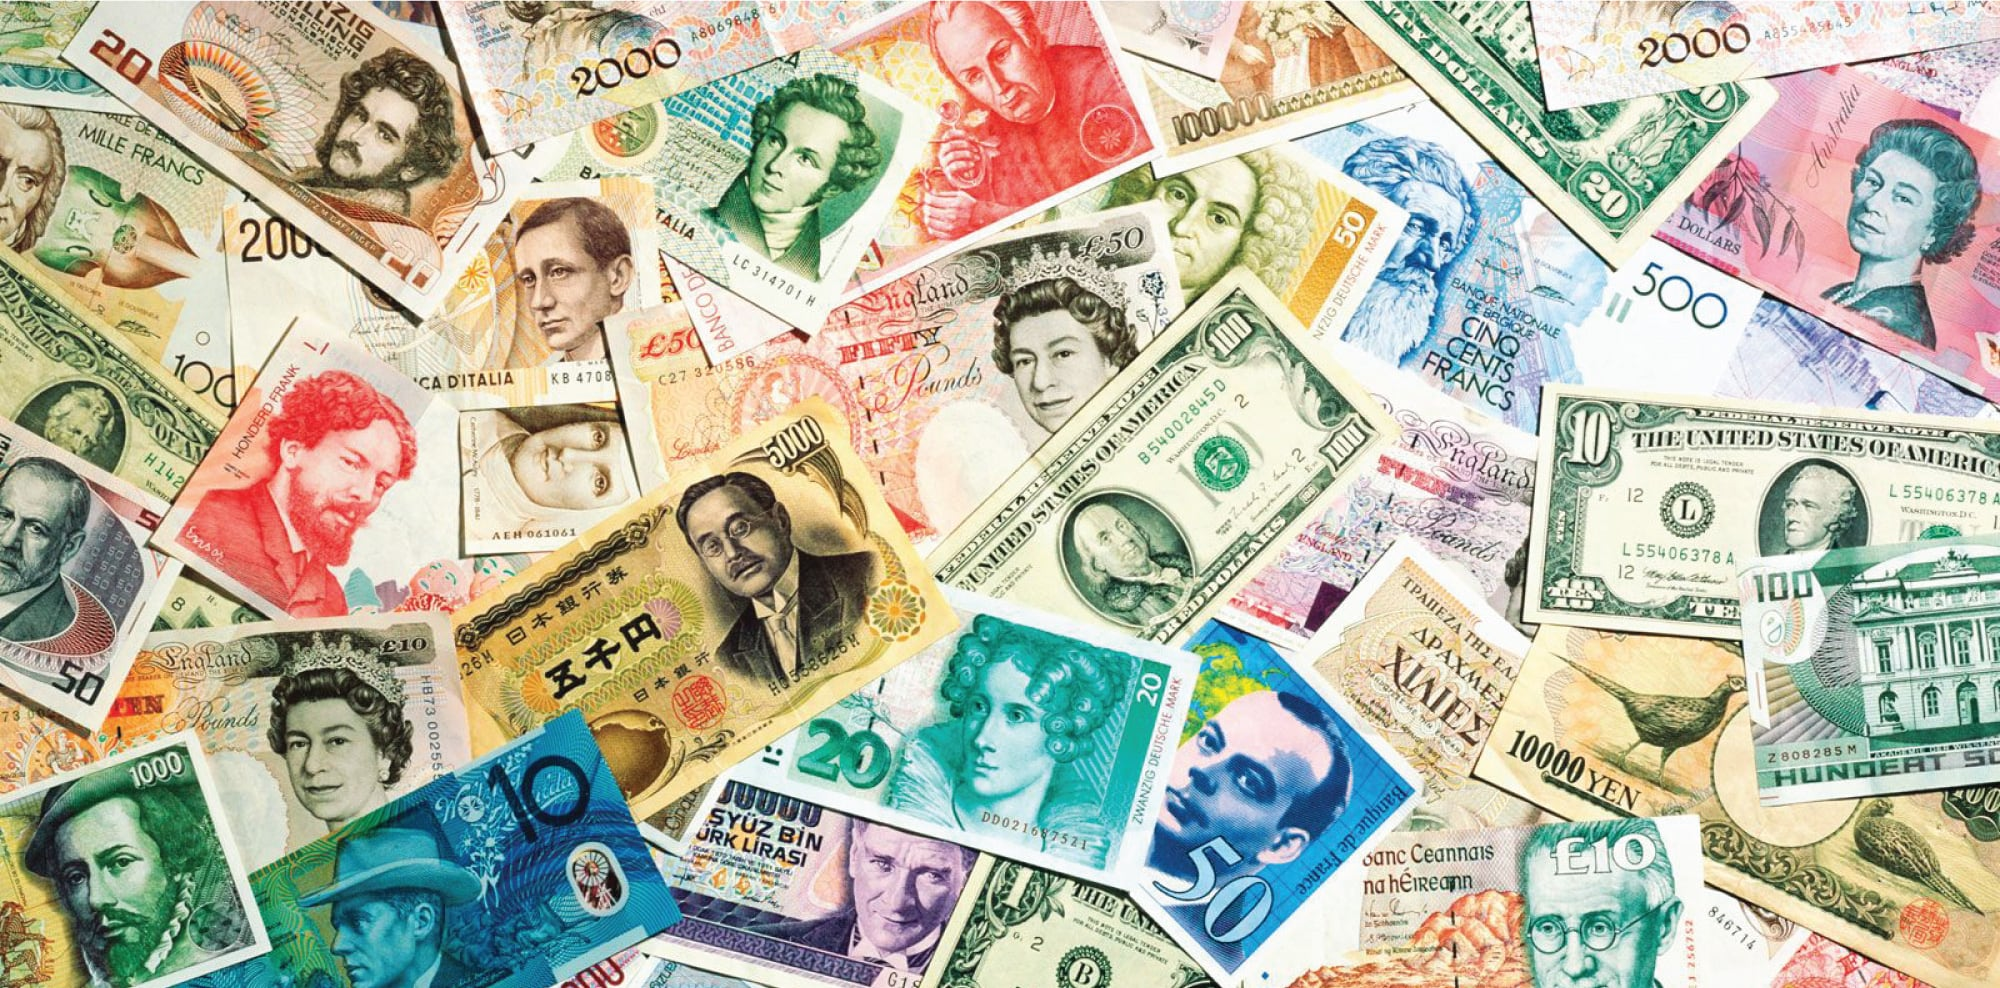 Large stock image of foreign currency all jumbled together